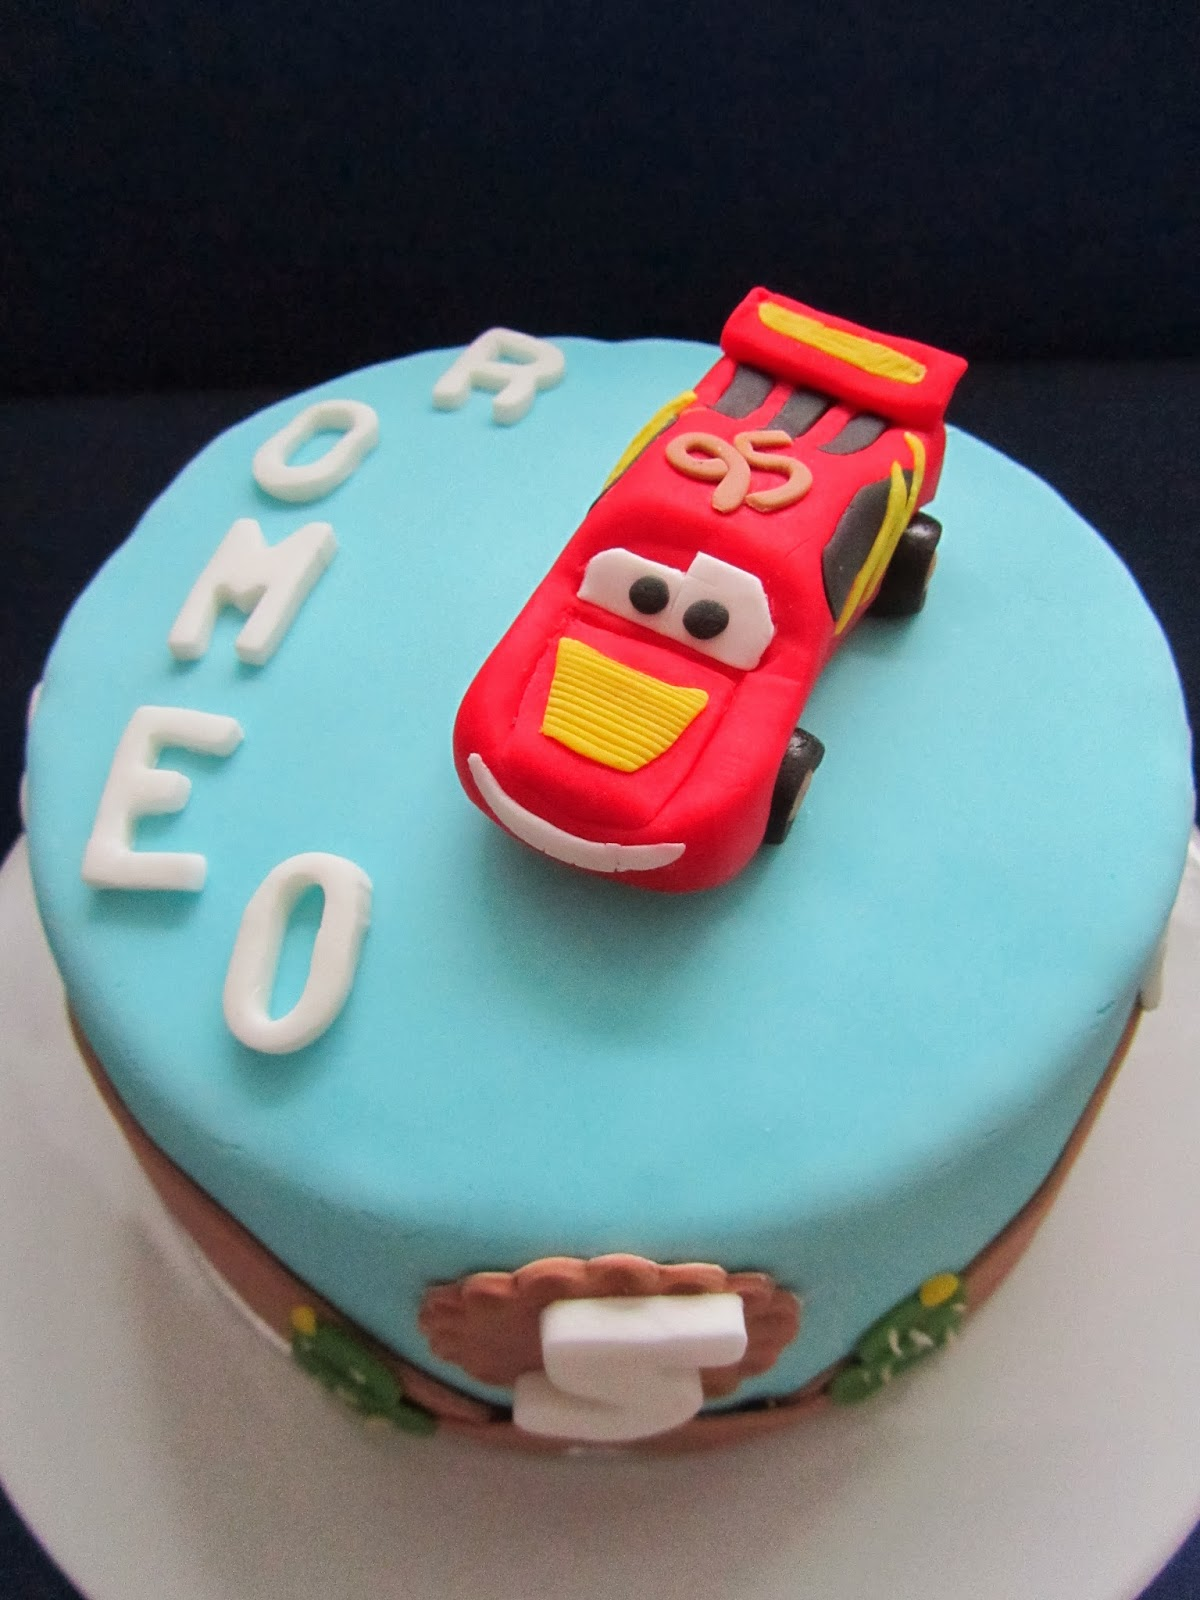 Kaufen cars torte Sweets For